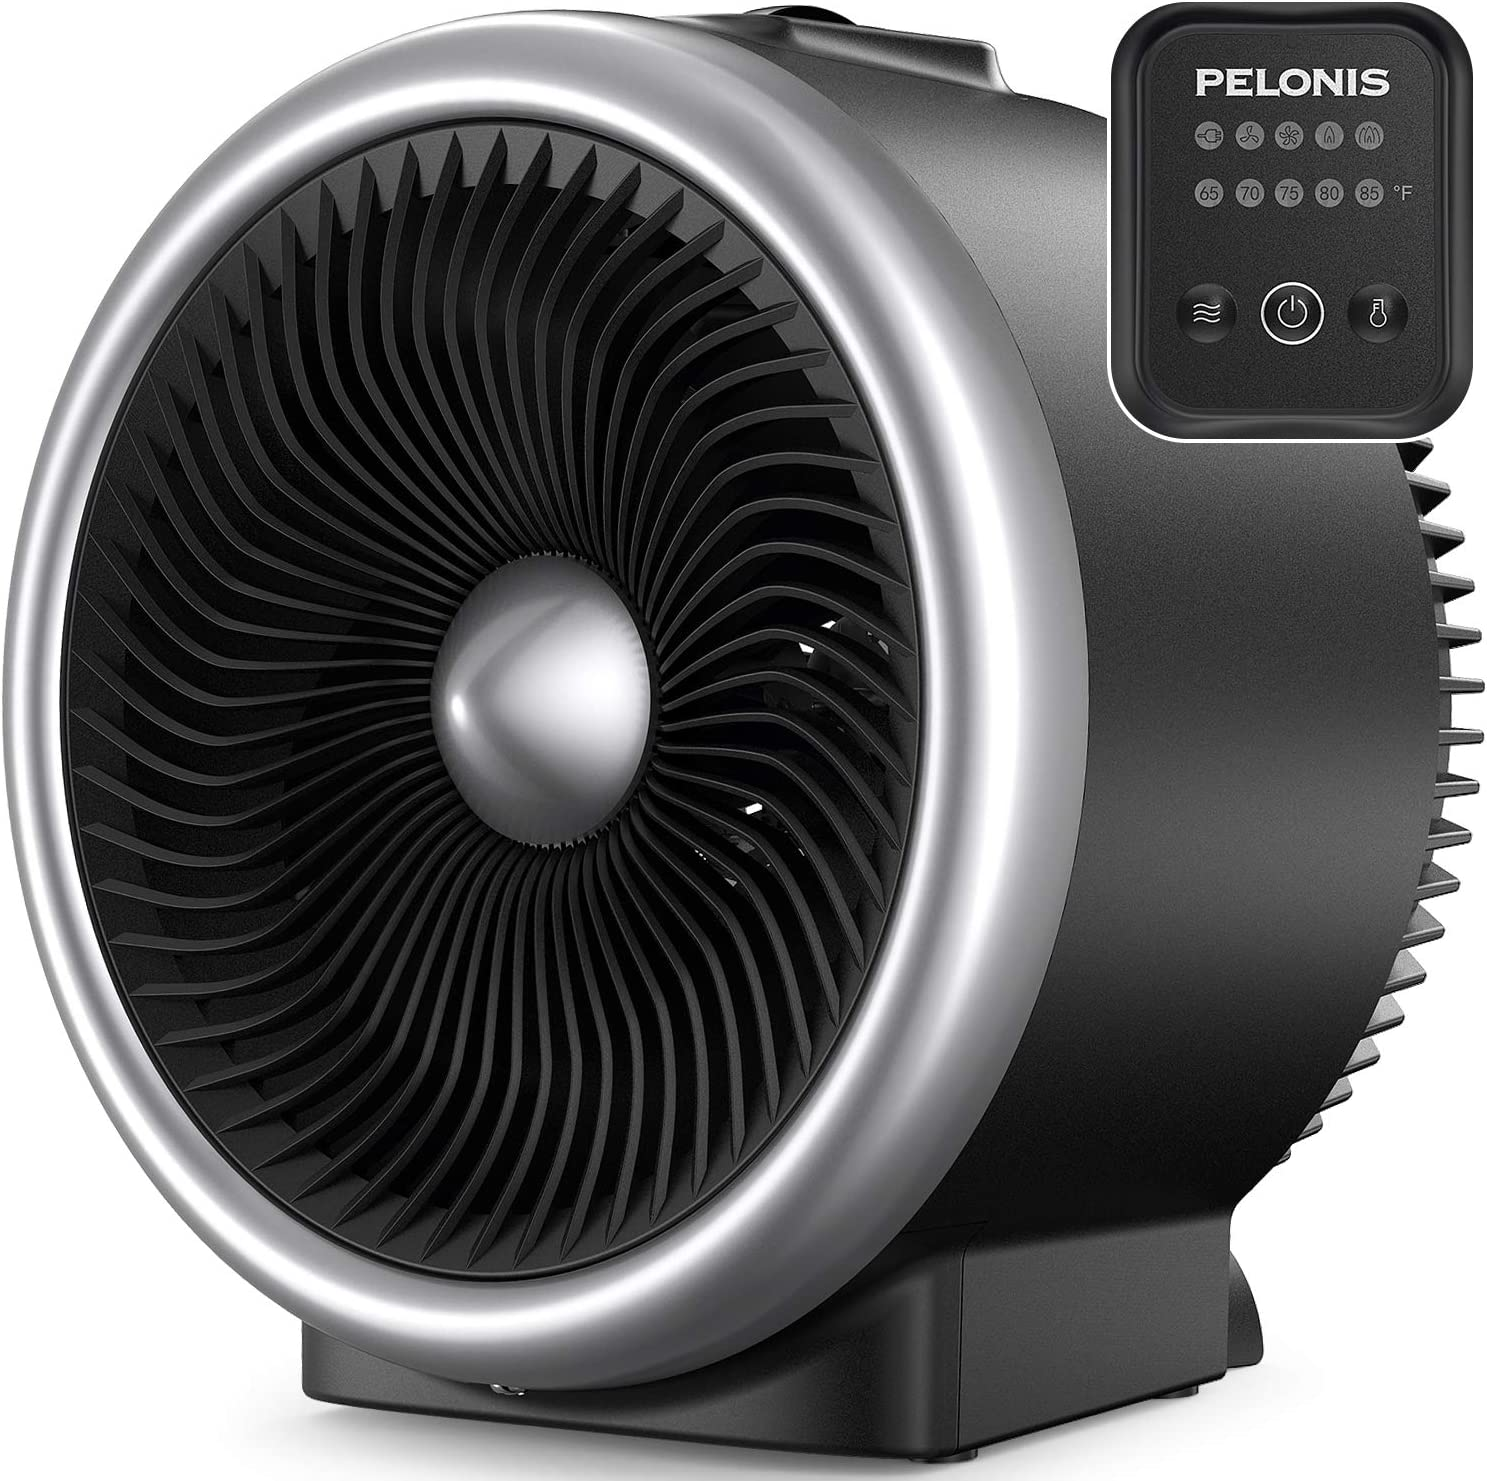 Auto Tip-Over /& Overheat Protection for All Seasons /& Whole Room Use PELONIS PSH750S Table Circulation Fan with Heating Function Electronic Adjustable Thermostat Space Silver